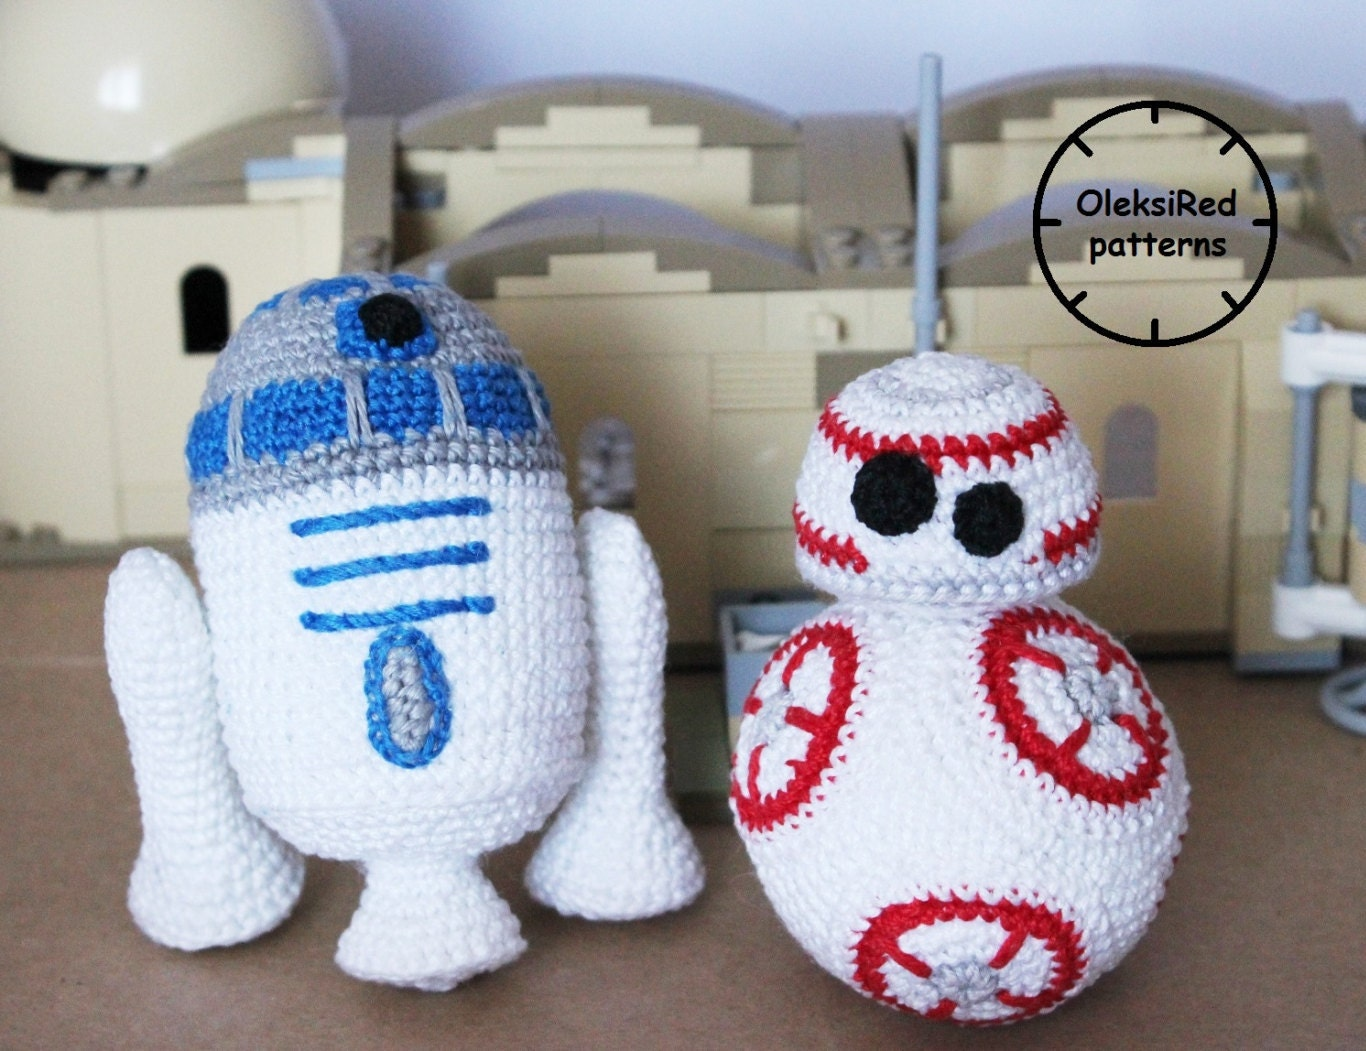 Free Crochet Pattern Star Wars : Star Wars CROCHET PATTERNS characters BB8 and R2D2